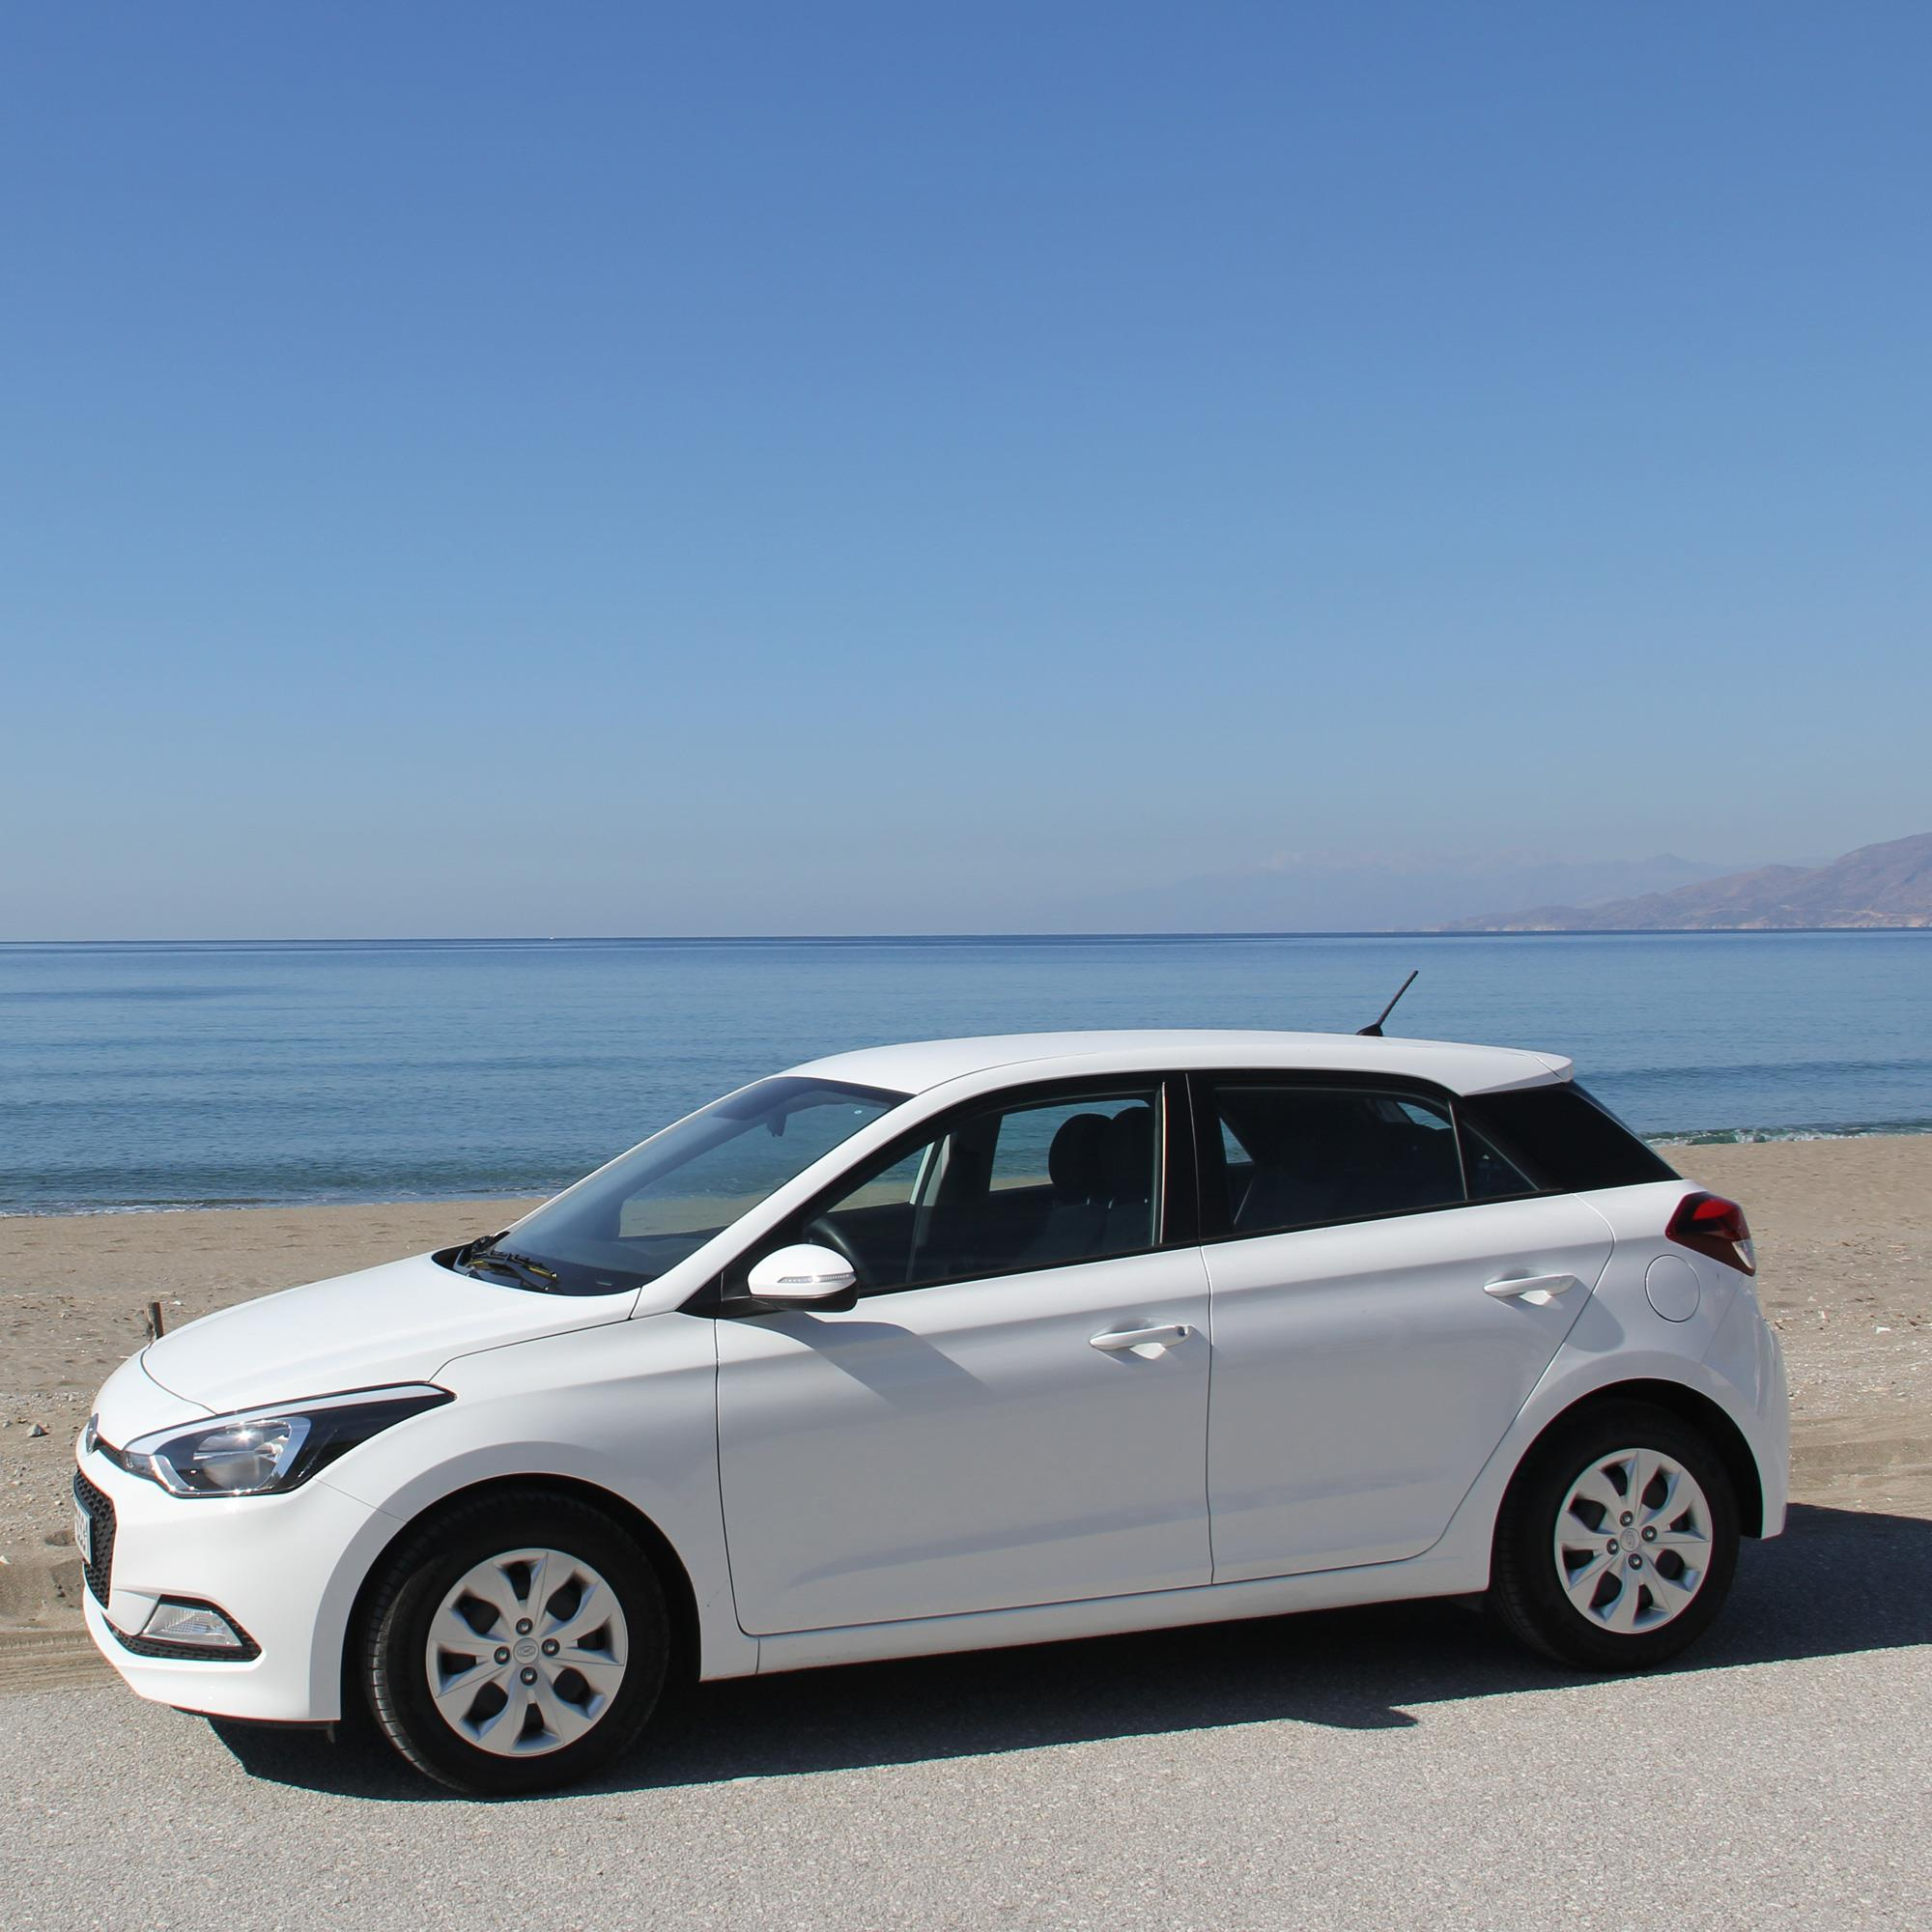 Category E3 - Hyundai I-20 Automatic